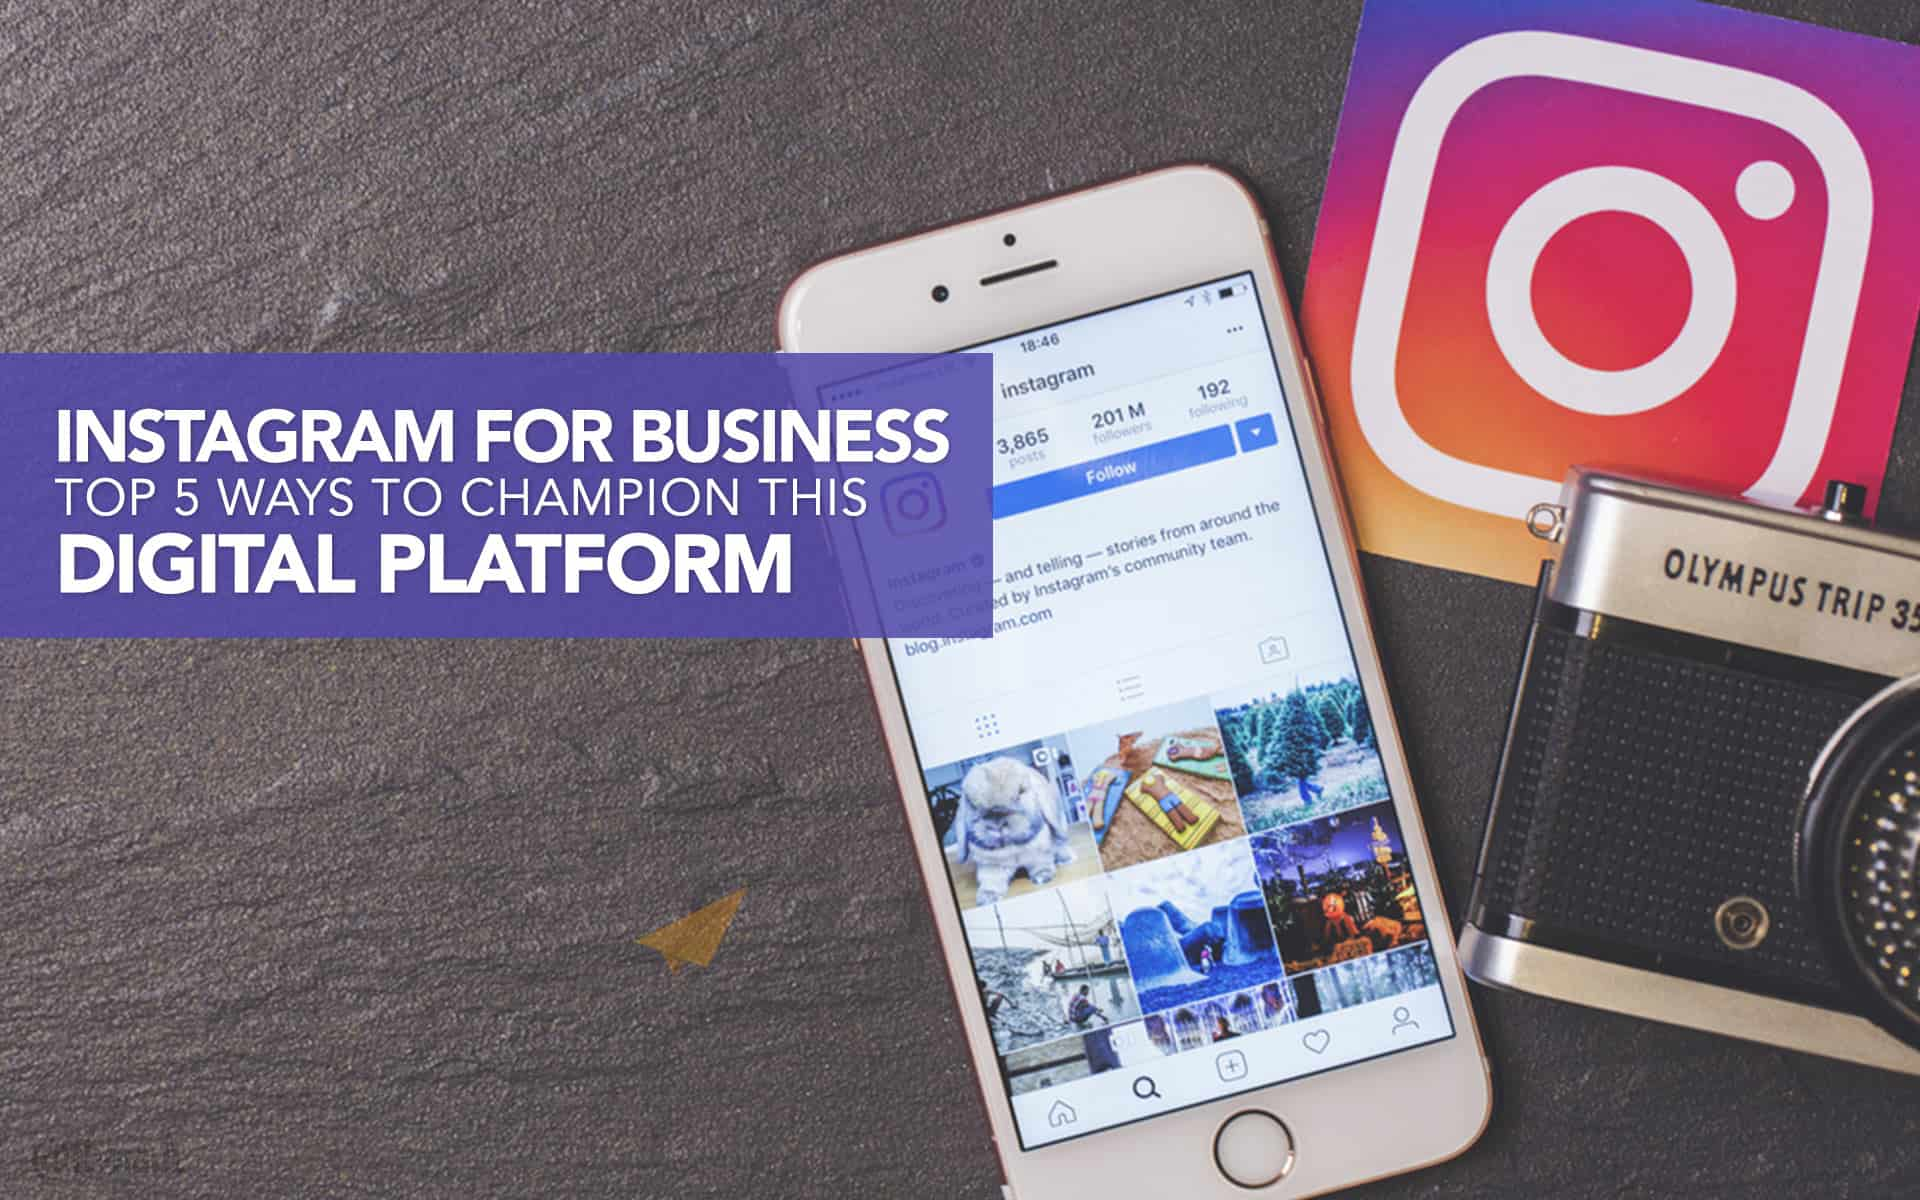 Instagram for Business: Top 5 Ways to champion this digital platform